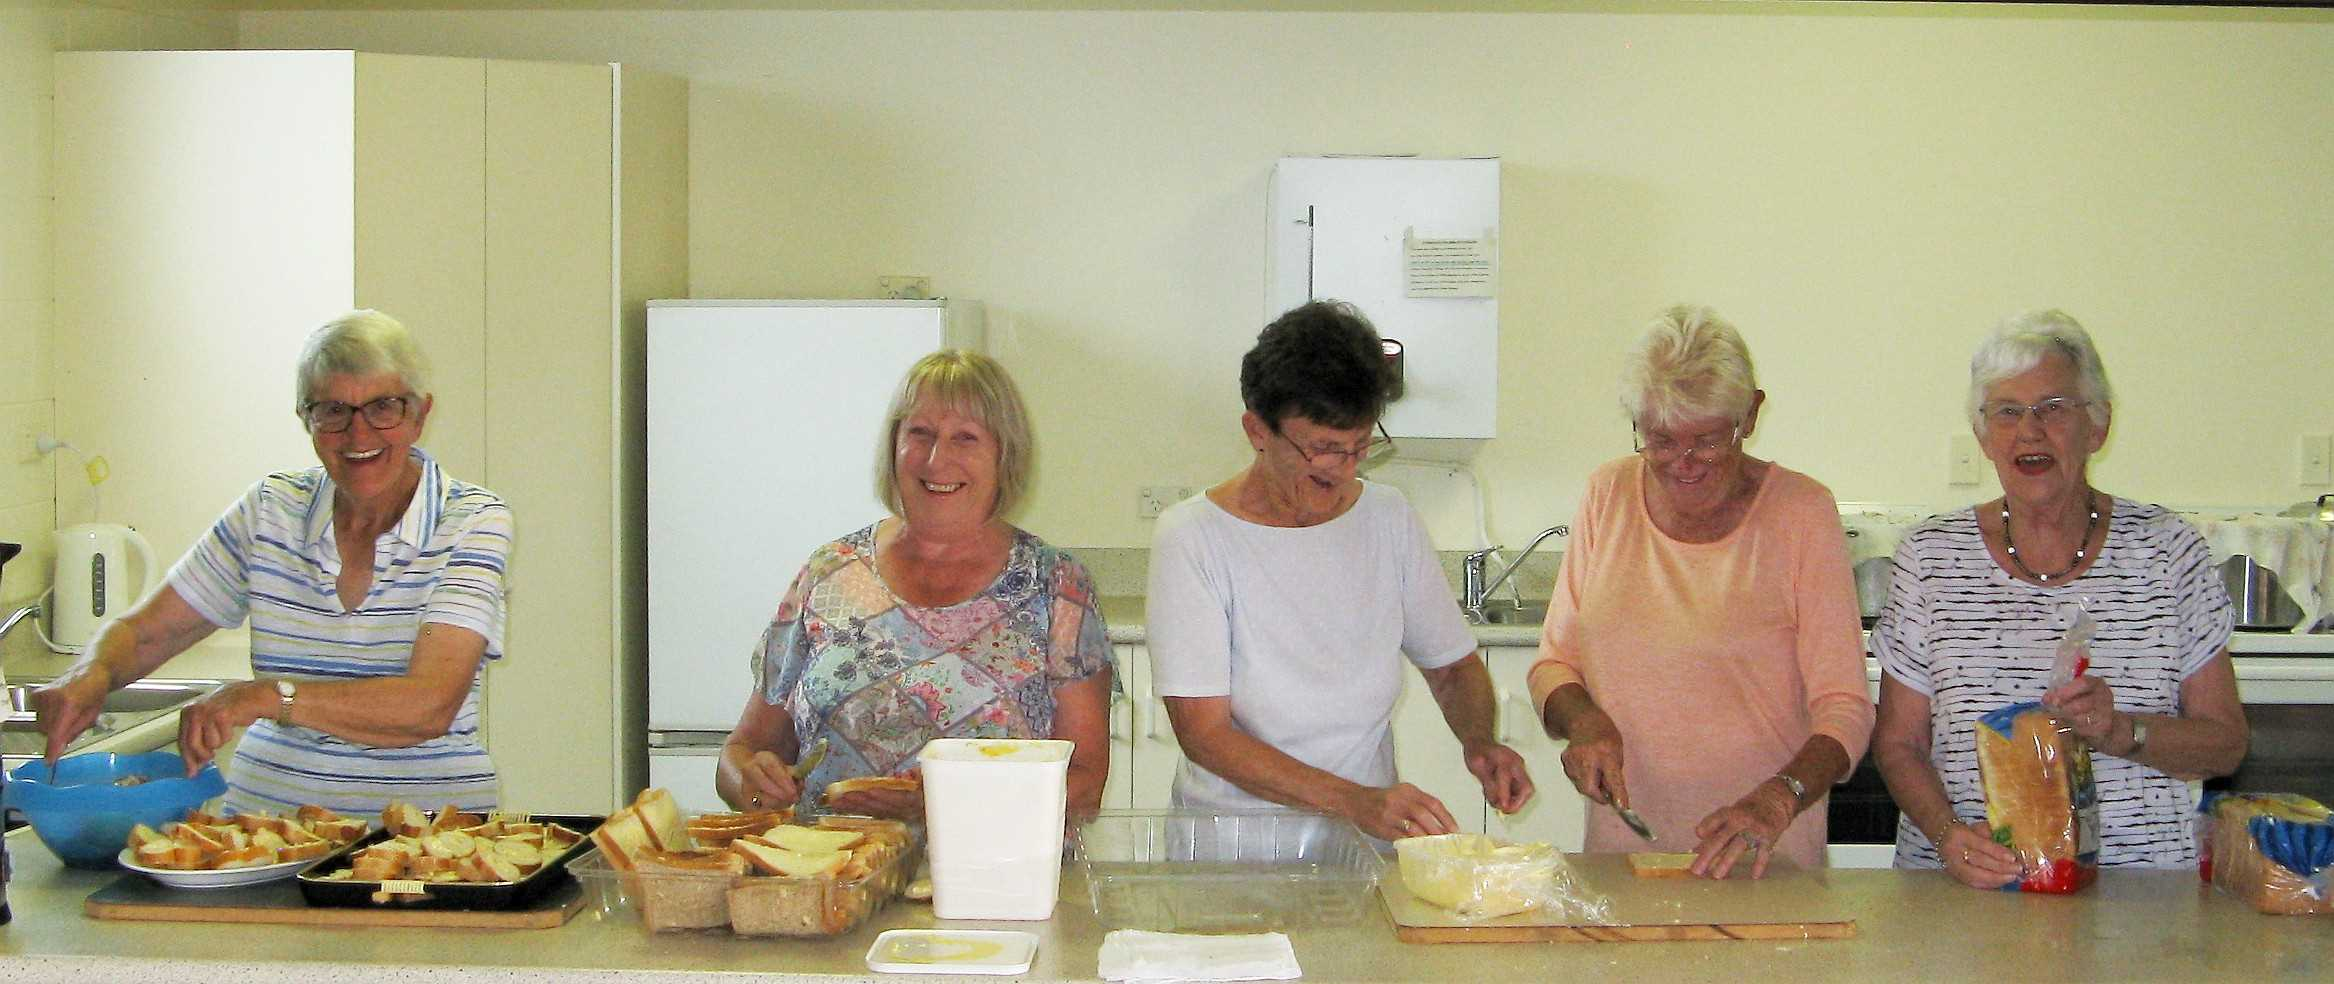 Community Bowls 22 Feb - The Ladies on the Food: Margaret, Bev, Kay, Pauline and Mary